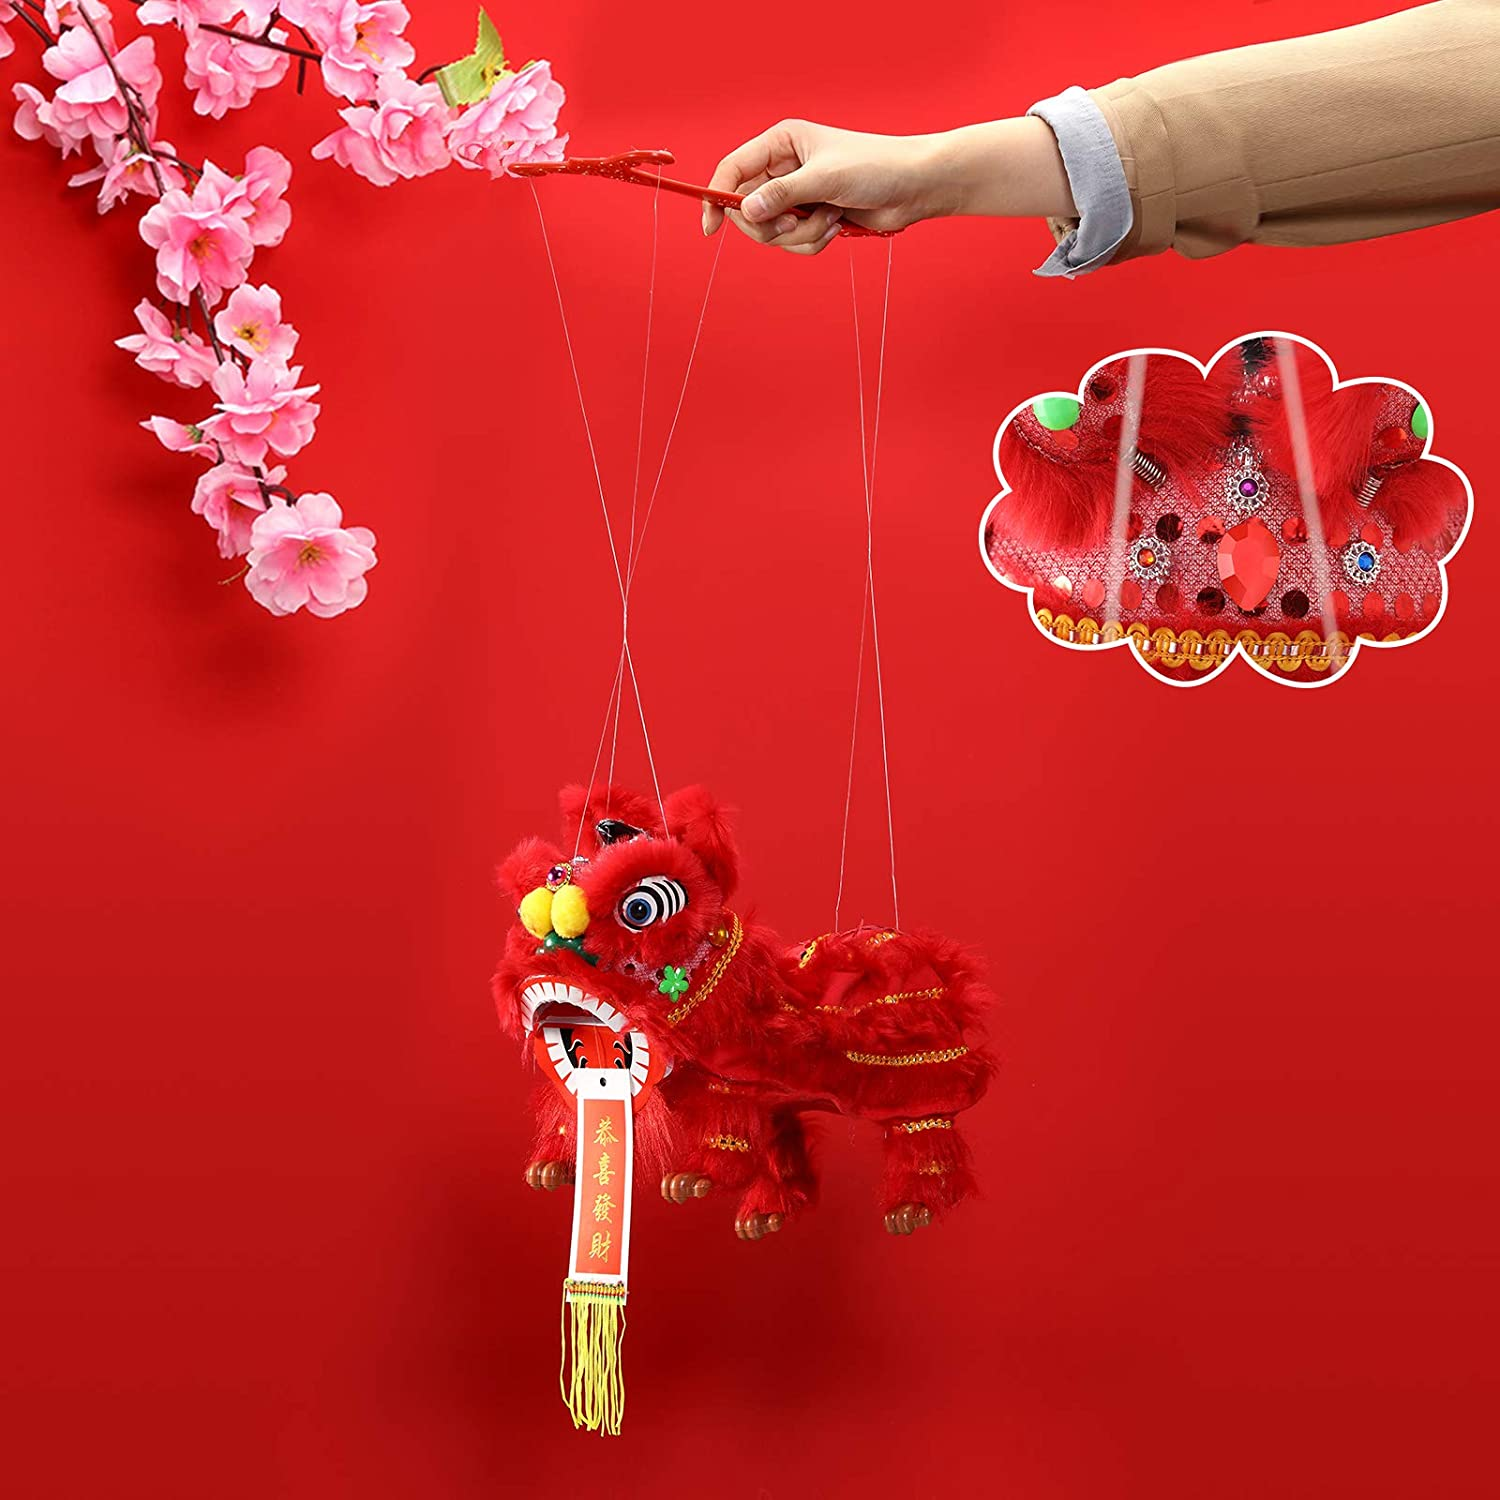 Chinese Lion Marionette Lion Puppets Chinese Hand Puppet Red Craft Hand String Puppet with Rod Chinese New Year Marionette Toy